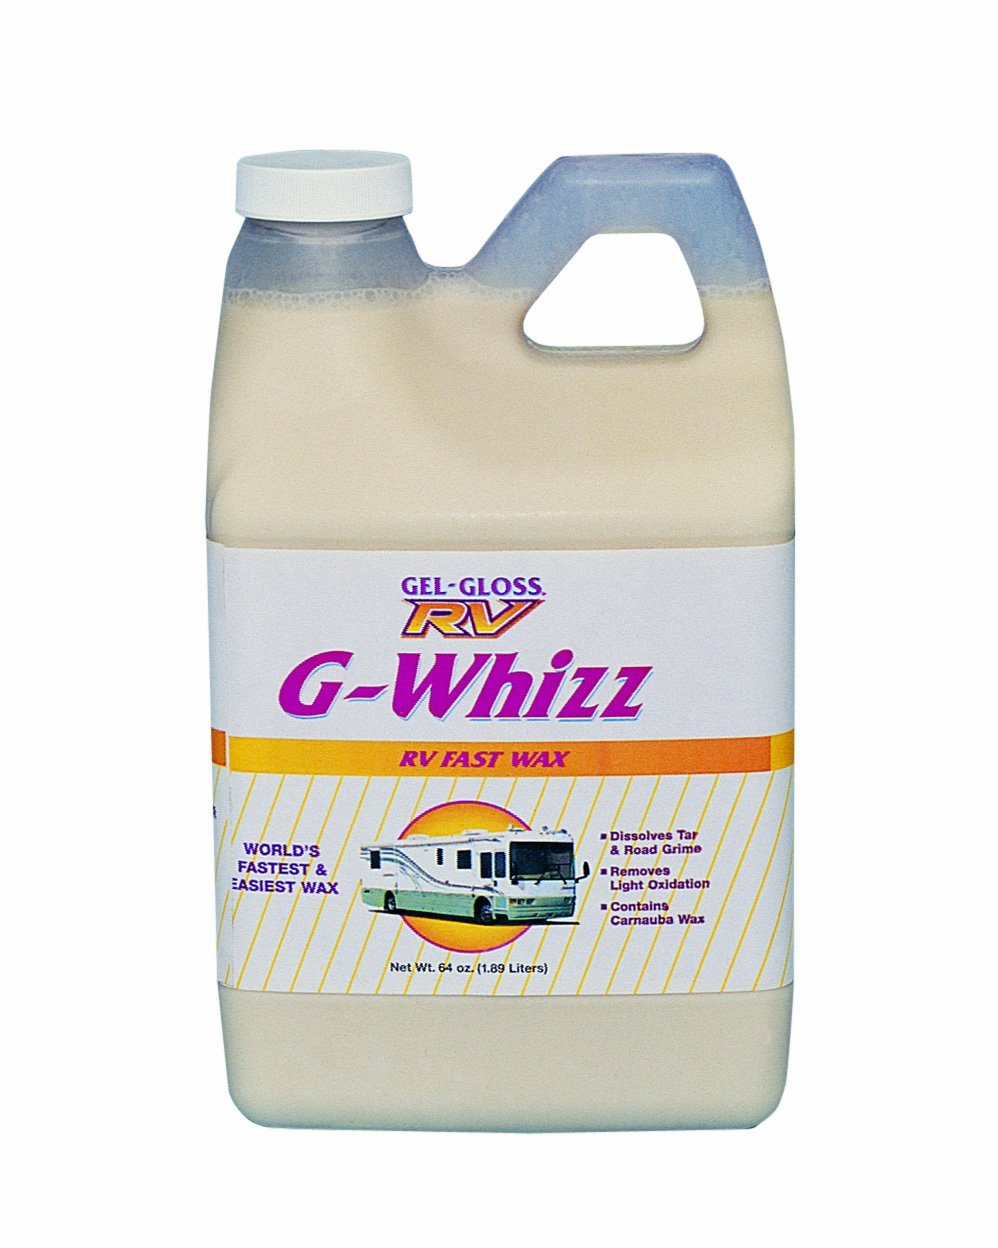 GW-64 TR Industry/ Gel Gloss Car Wax Liquid Carnauba Wax